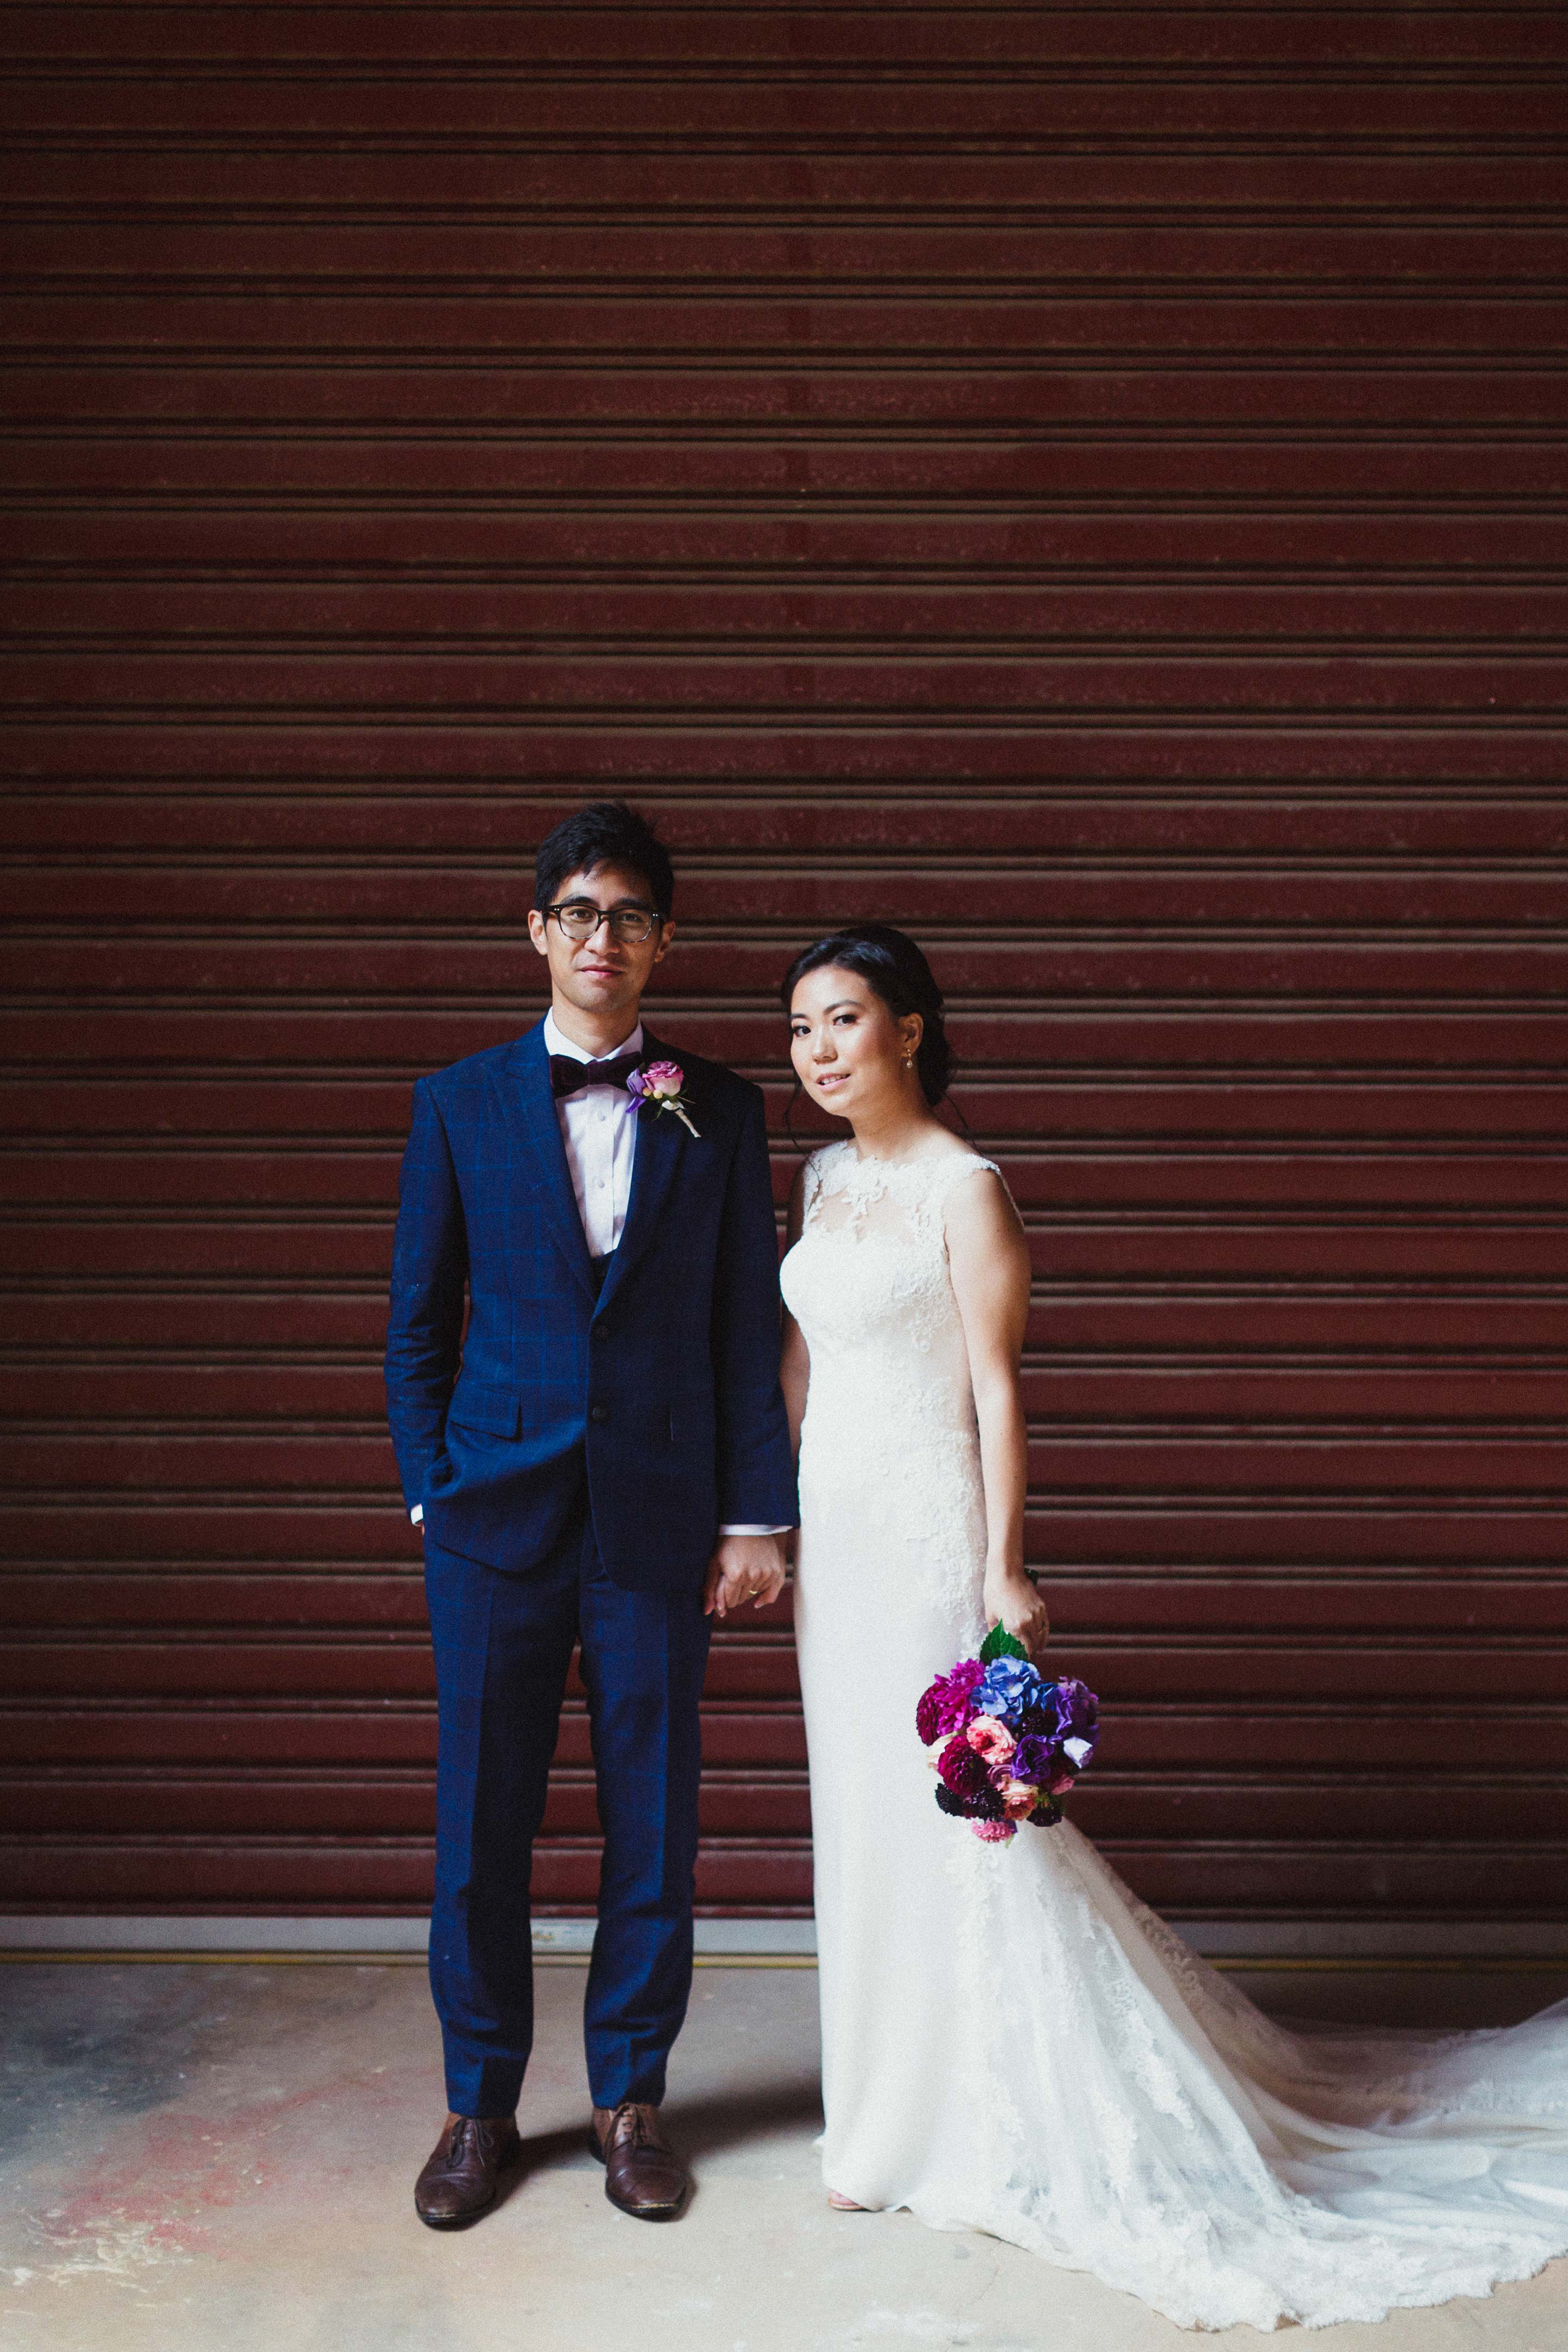 Melbourne-Richmond-Glasshaus-Wedding-bride-groom-portrait